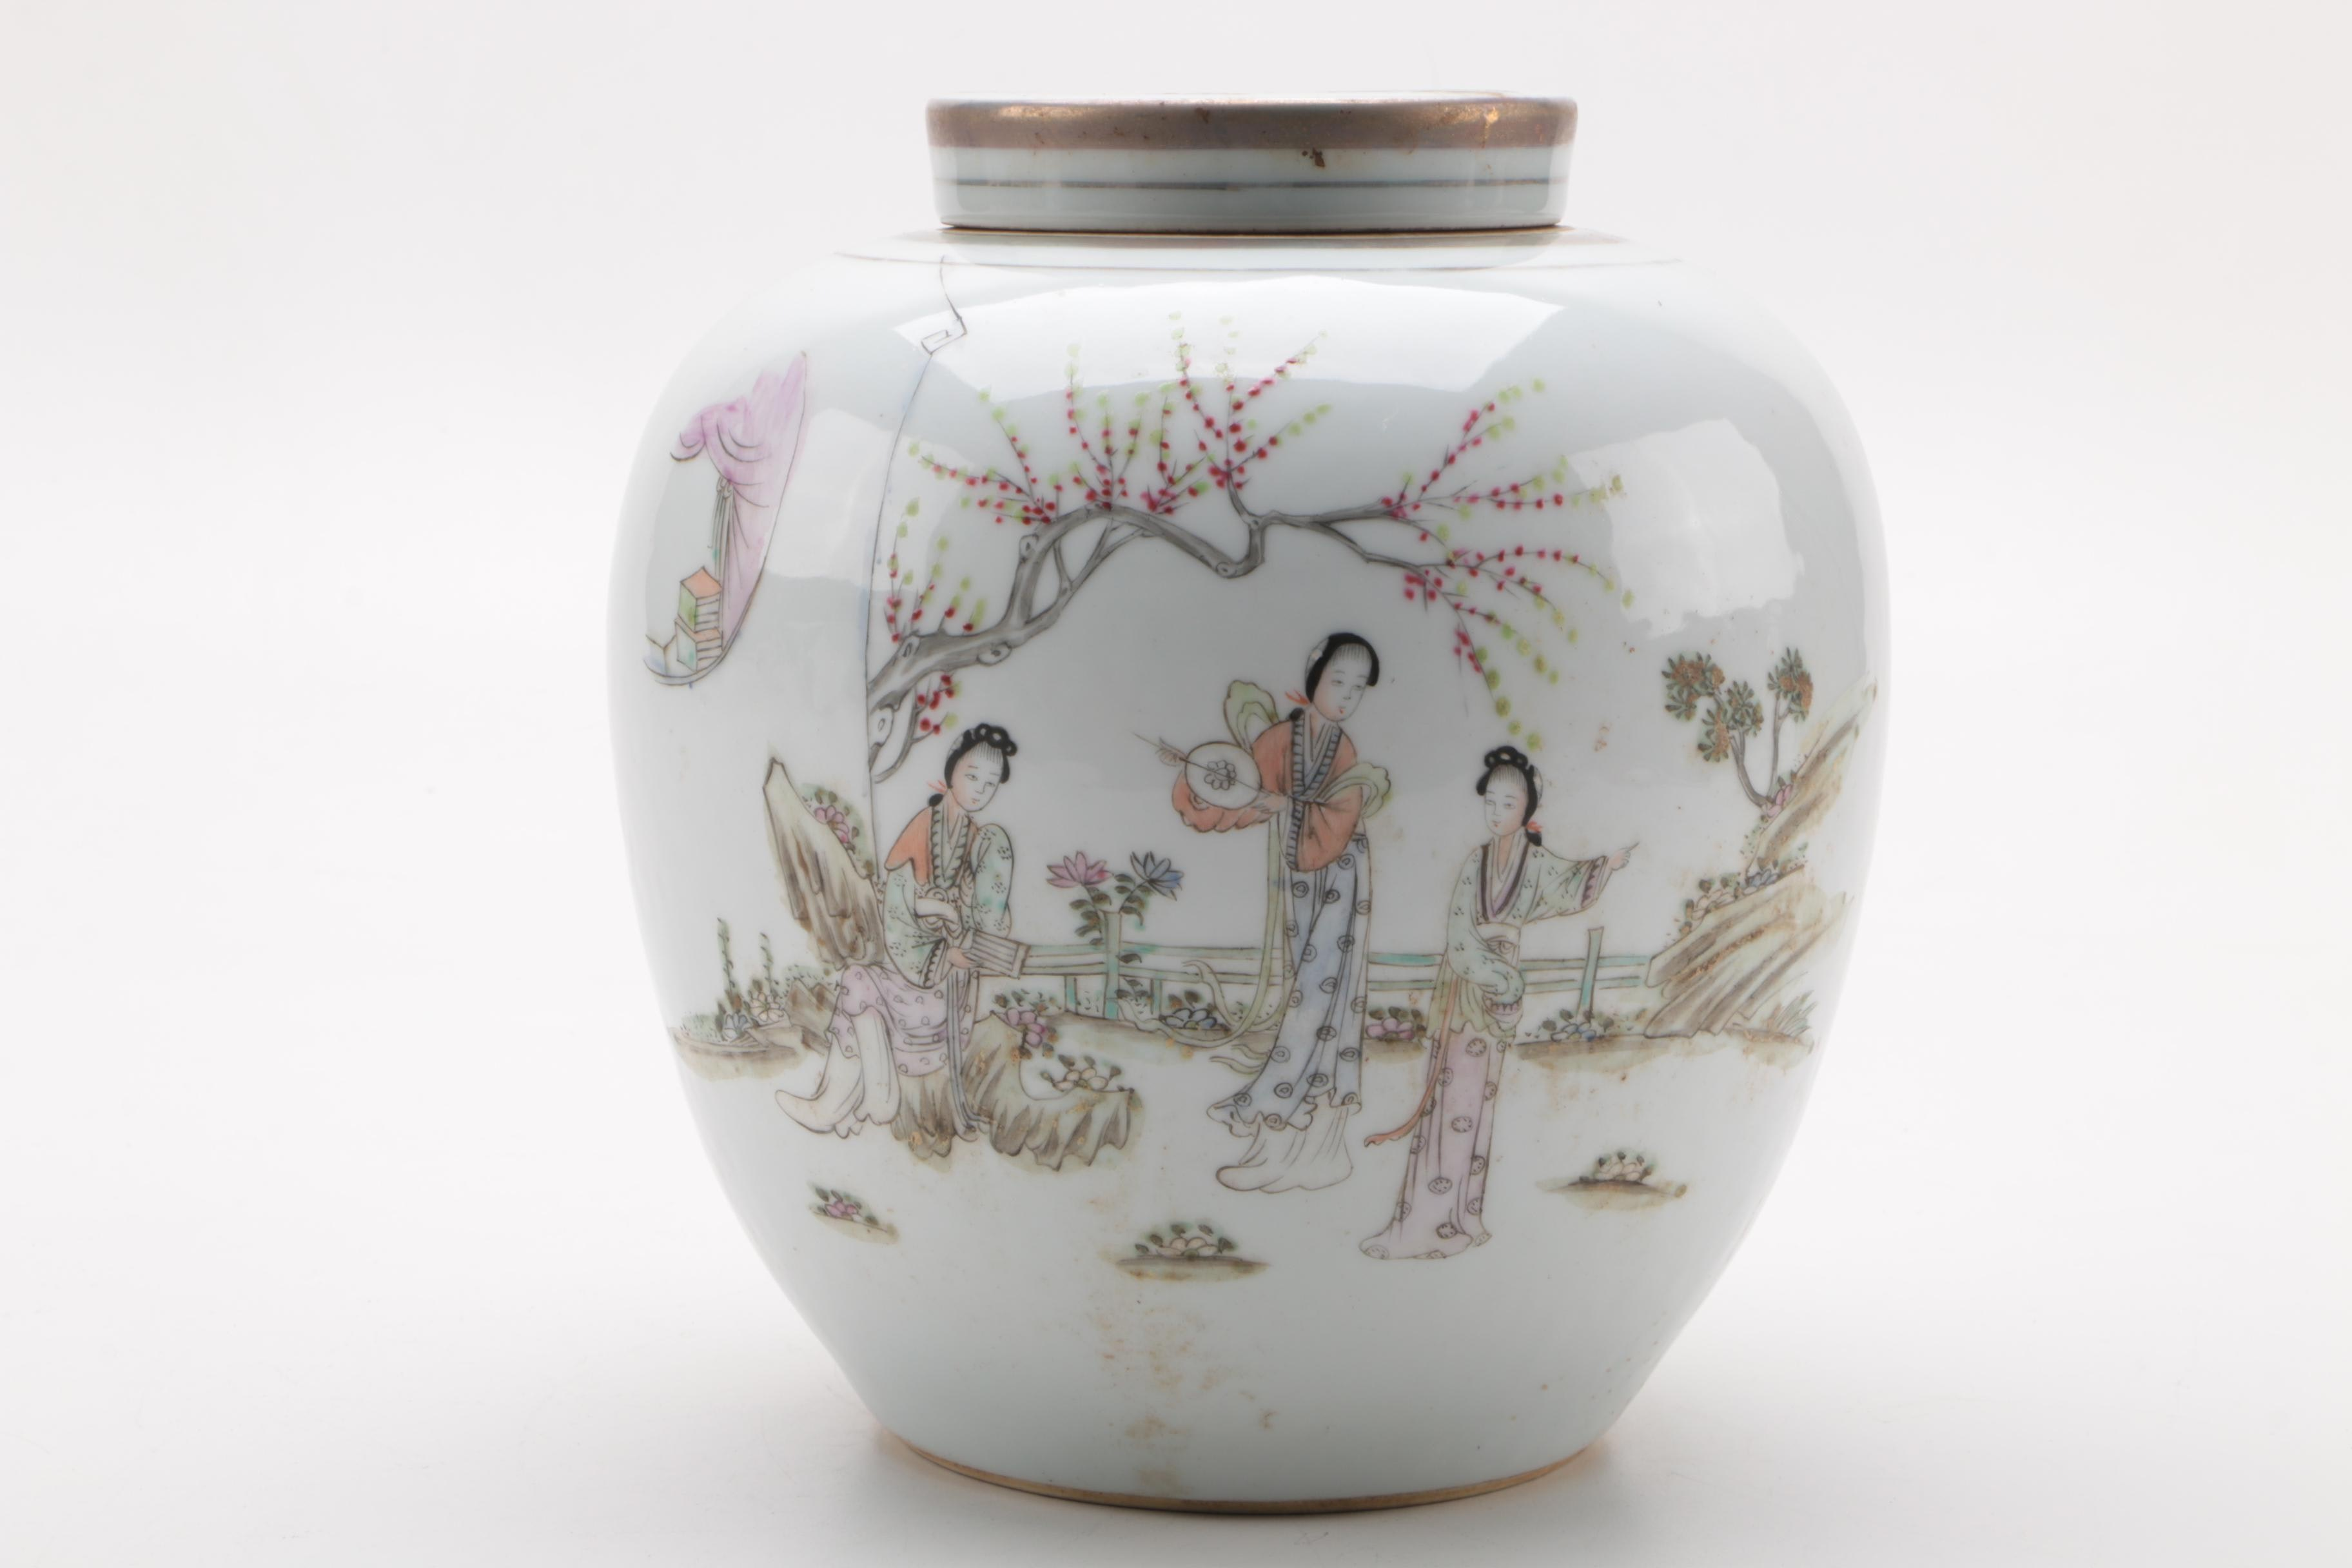 Chinese Hand-Painted Lidded Ceramic Ginger Jar